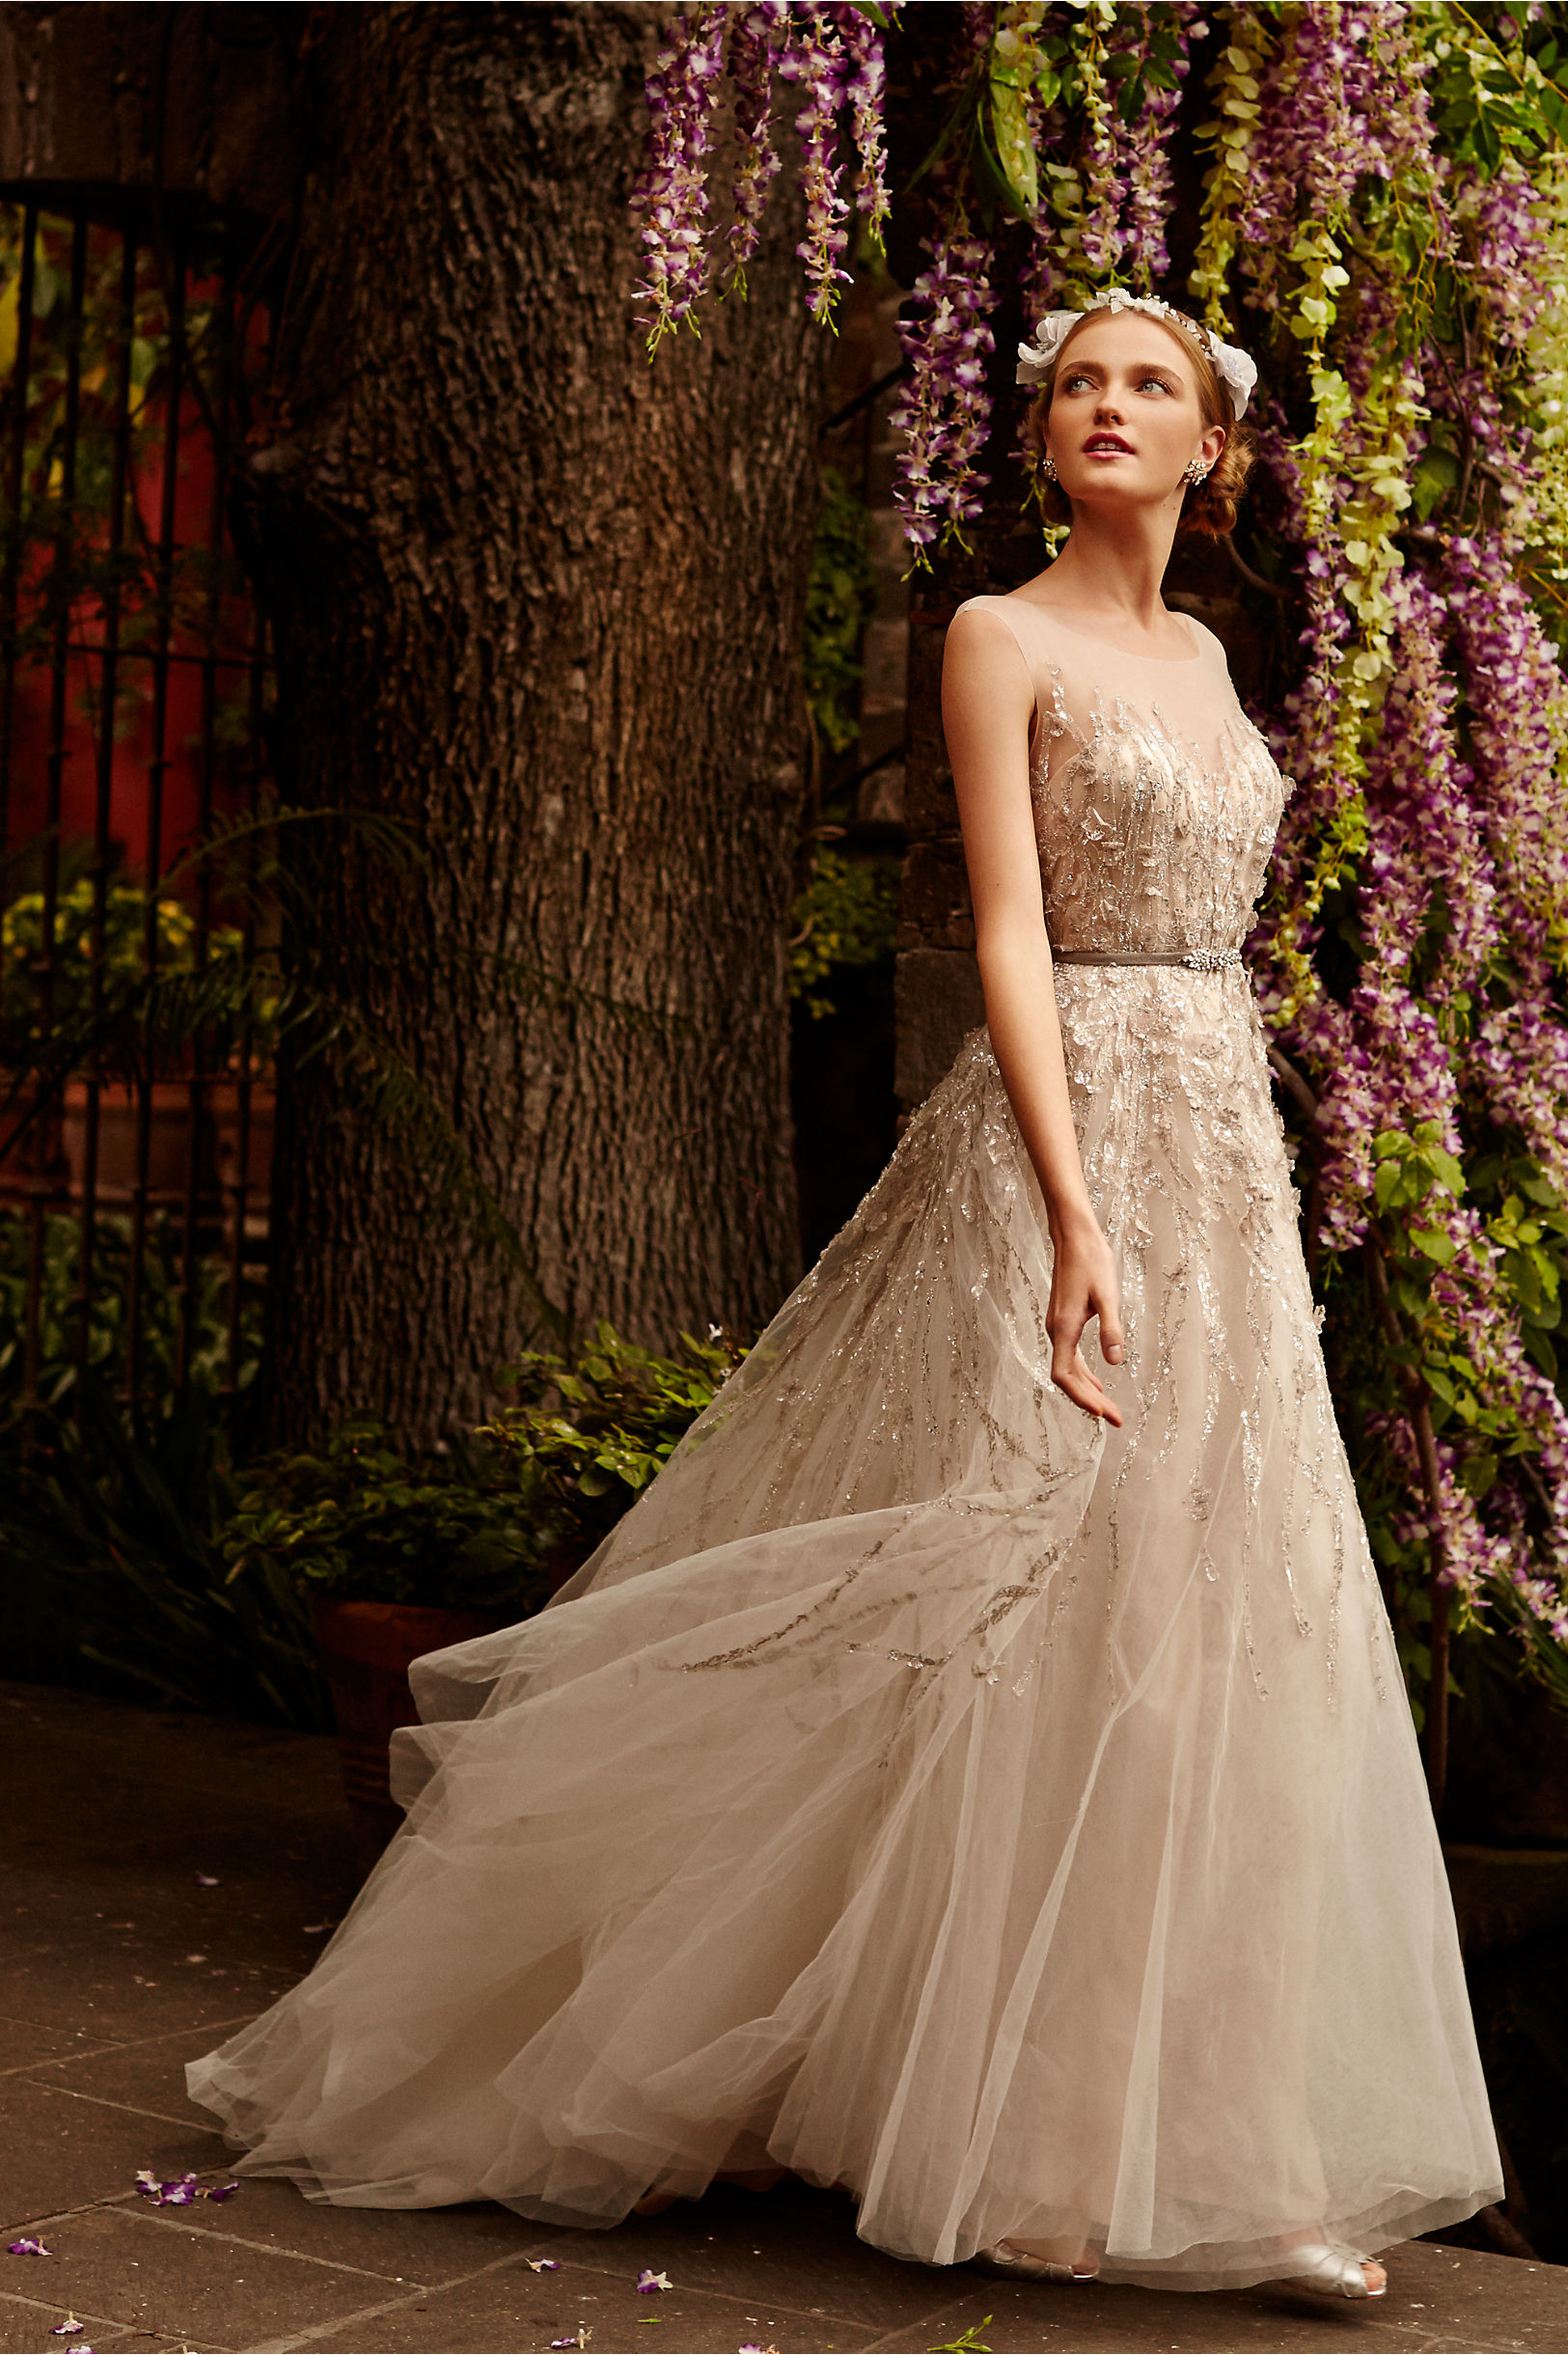 wisteria gown wedding gowns Watters Sandstone Wisteria Gown BHLDN